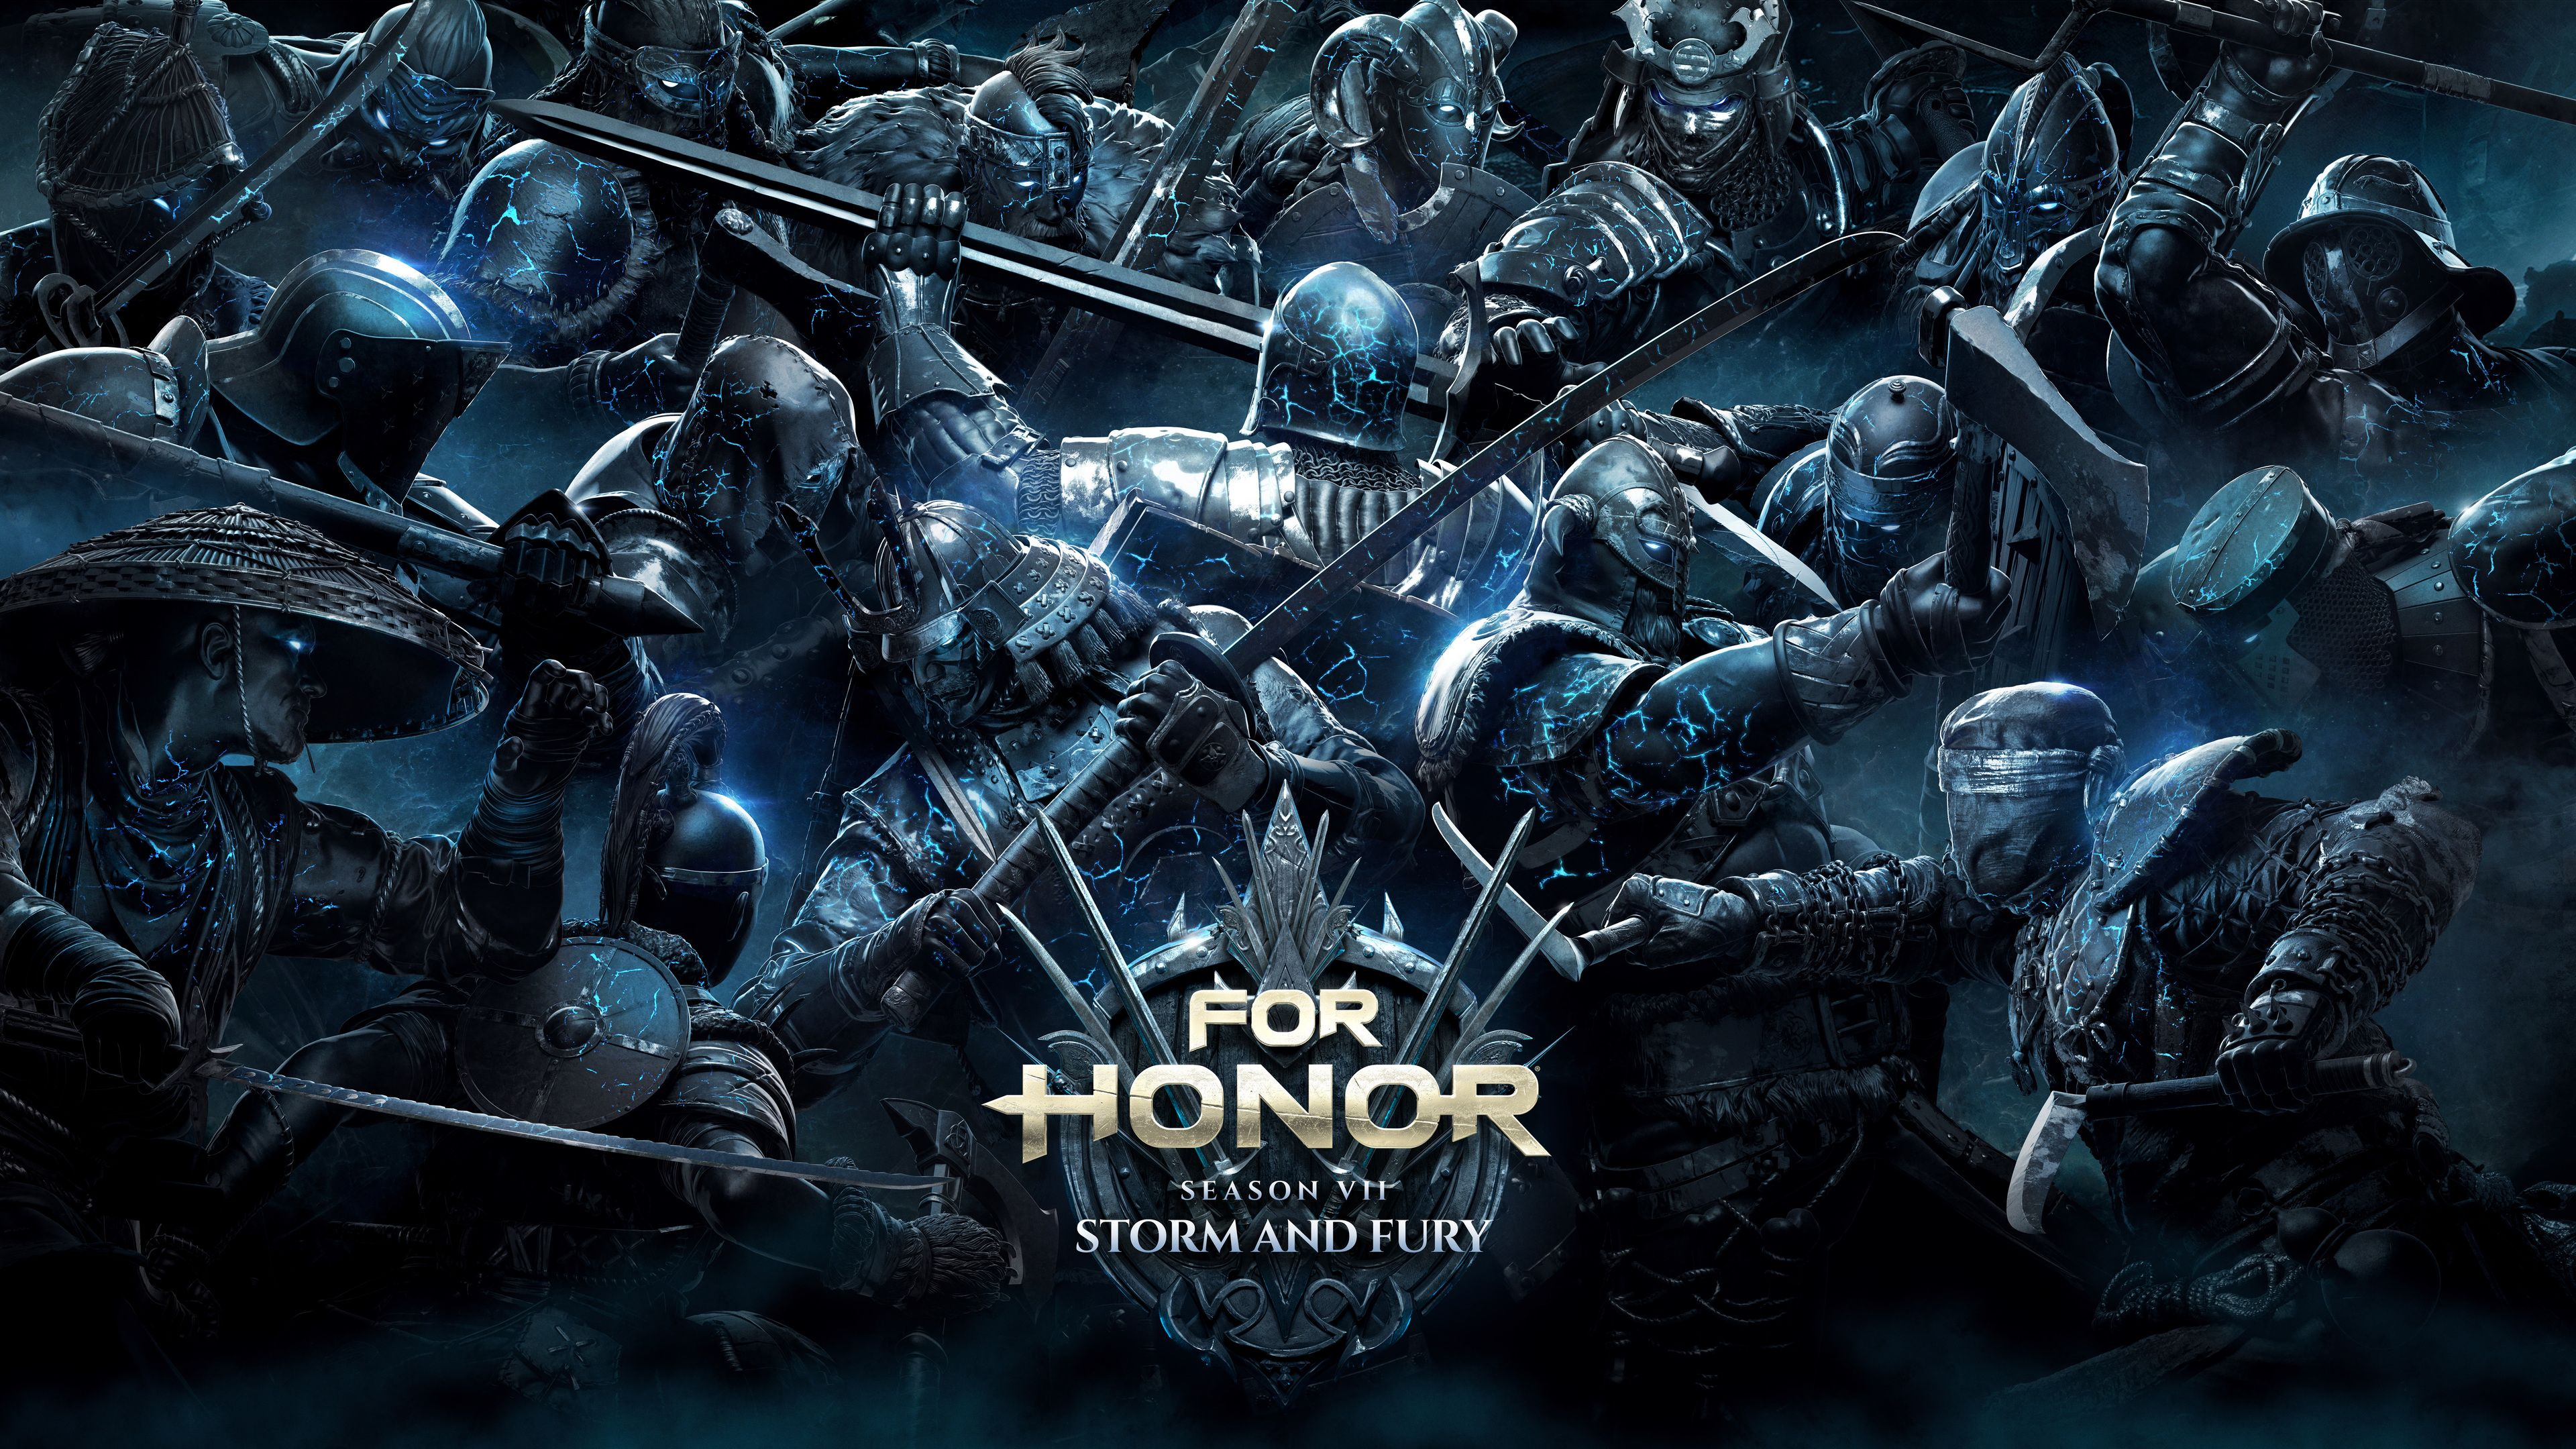 For Honor Season 7 Storm And Fury 2018 8k Xbox Games Wallpapers Ps Games Wallpapers Pc Games Wallpapers Hd Wallpapers G 8k Wallpaper Phone Photography Fury